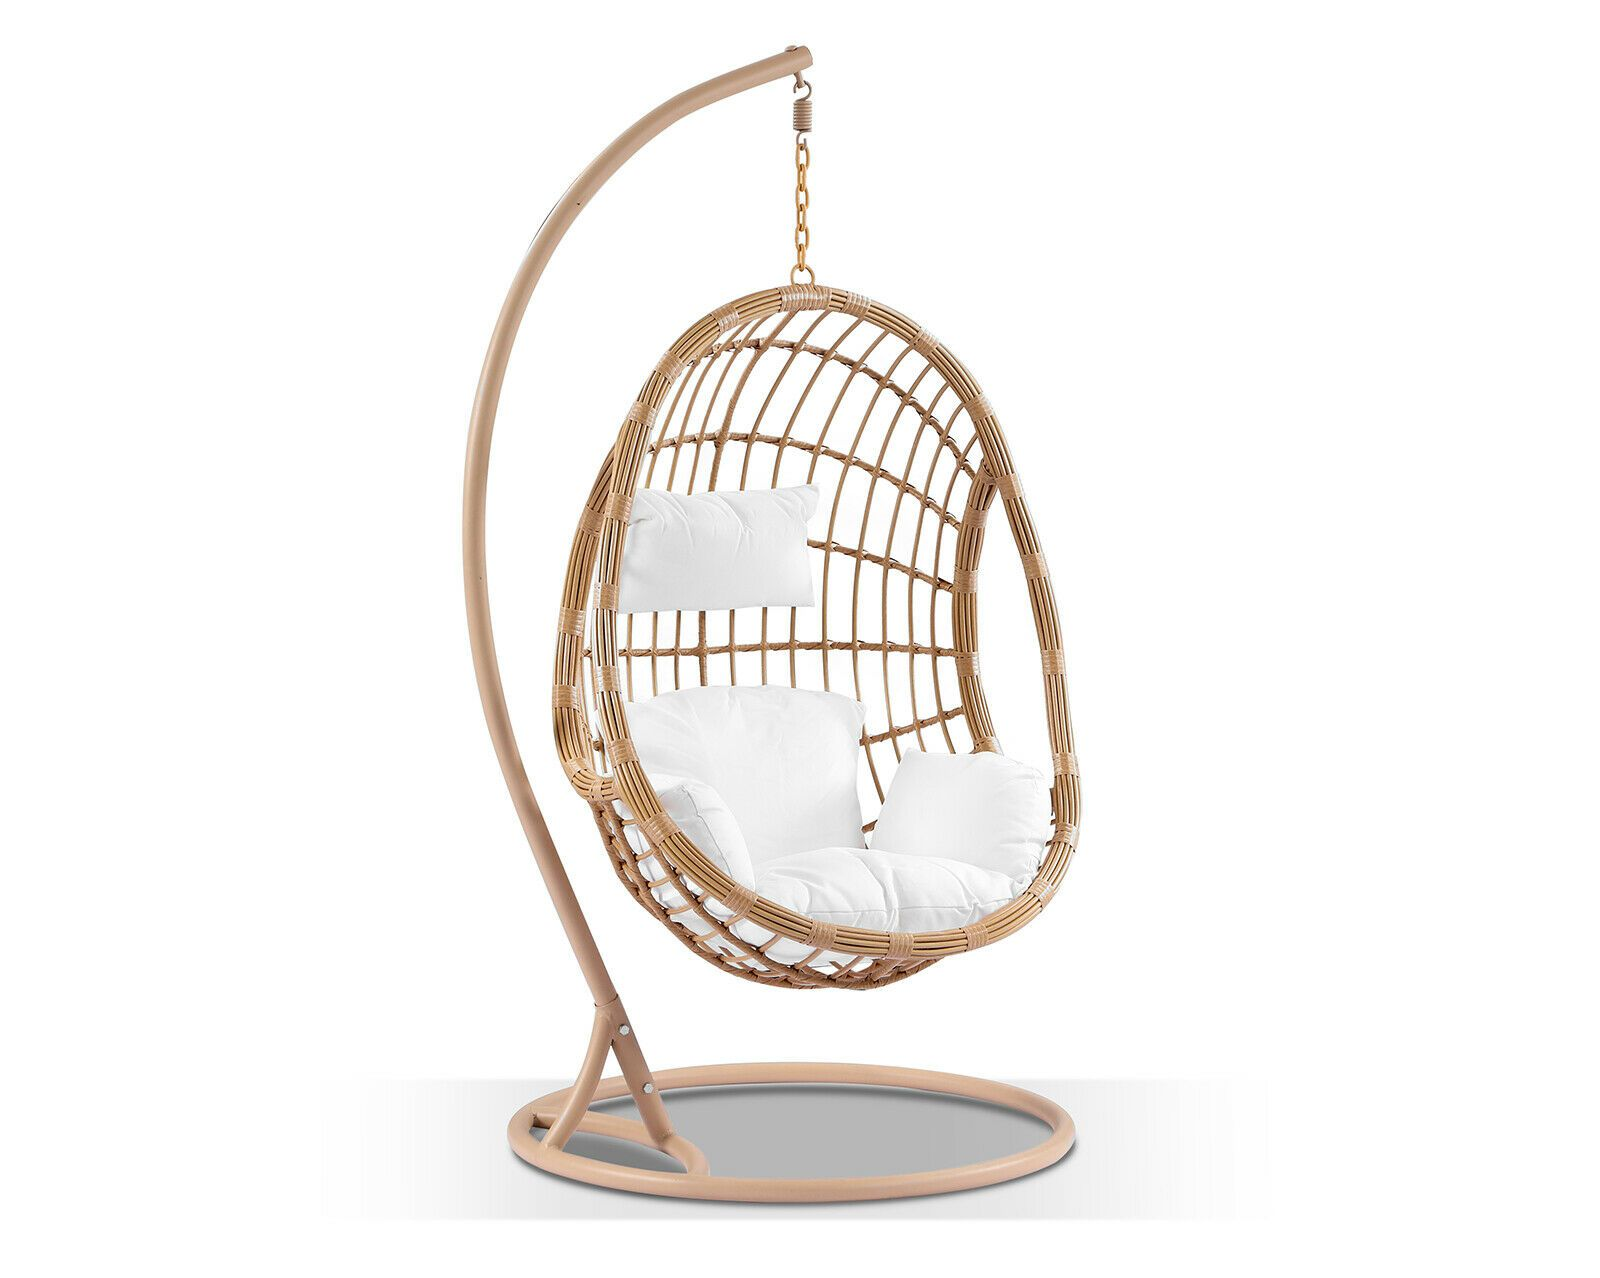 NEW Delilah Hanging Egg Chair Undercover Use, Wicker Pod